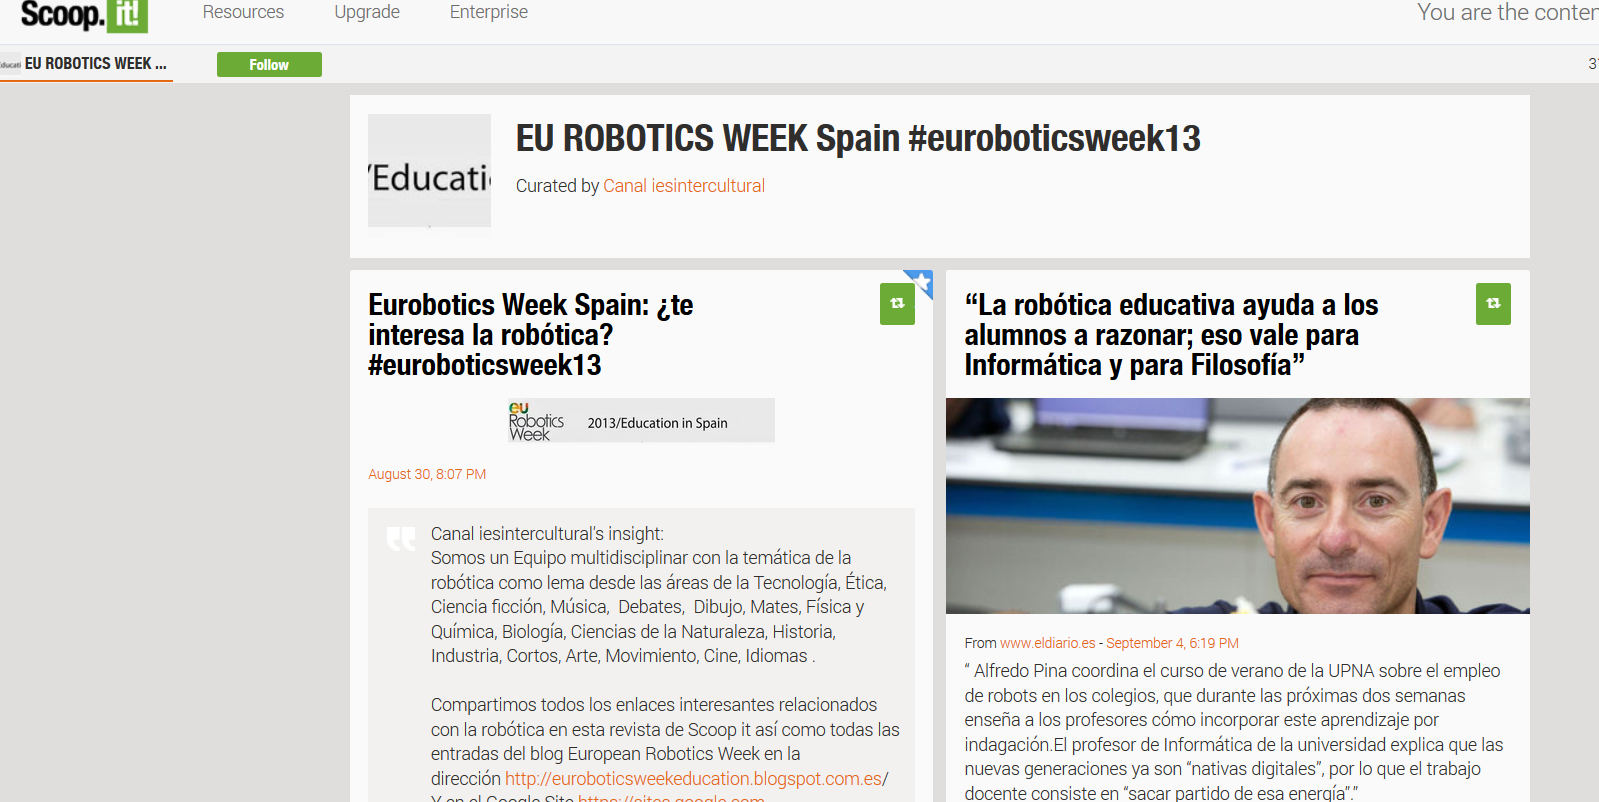 http://www.scoop.it/t/eu-robotics-week